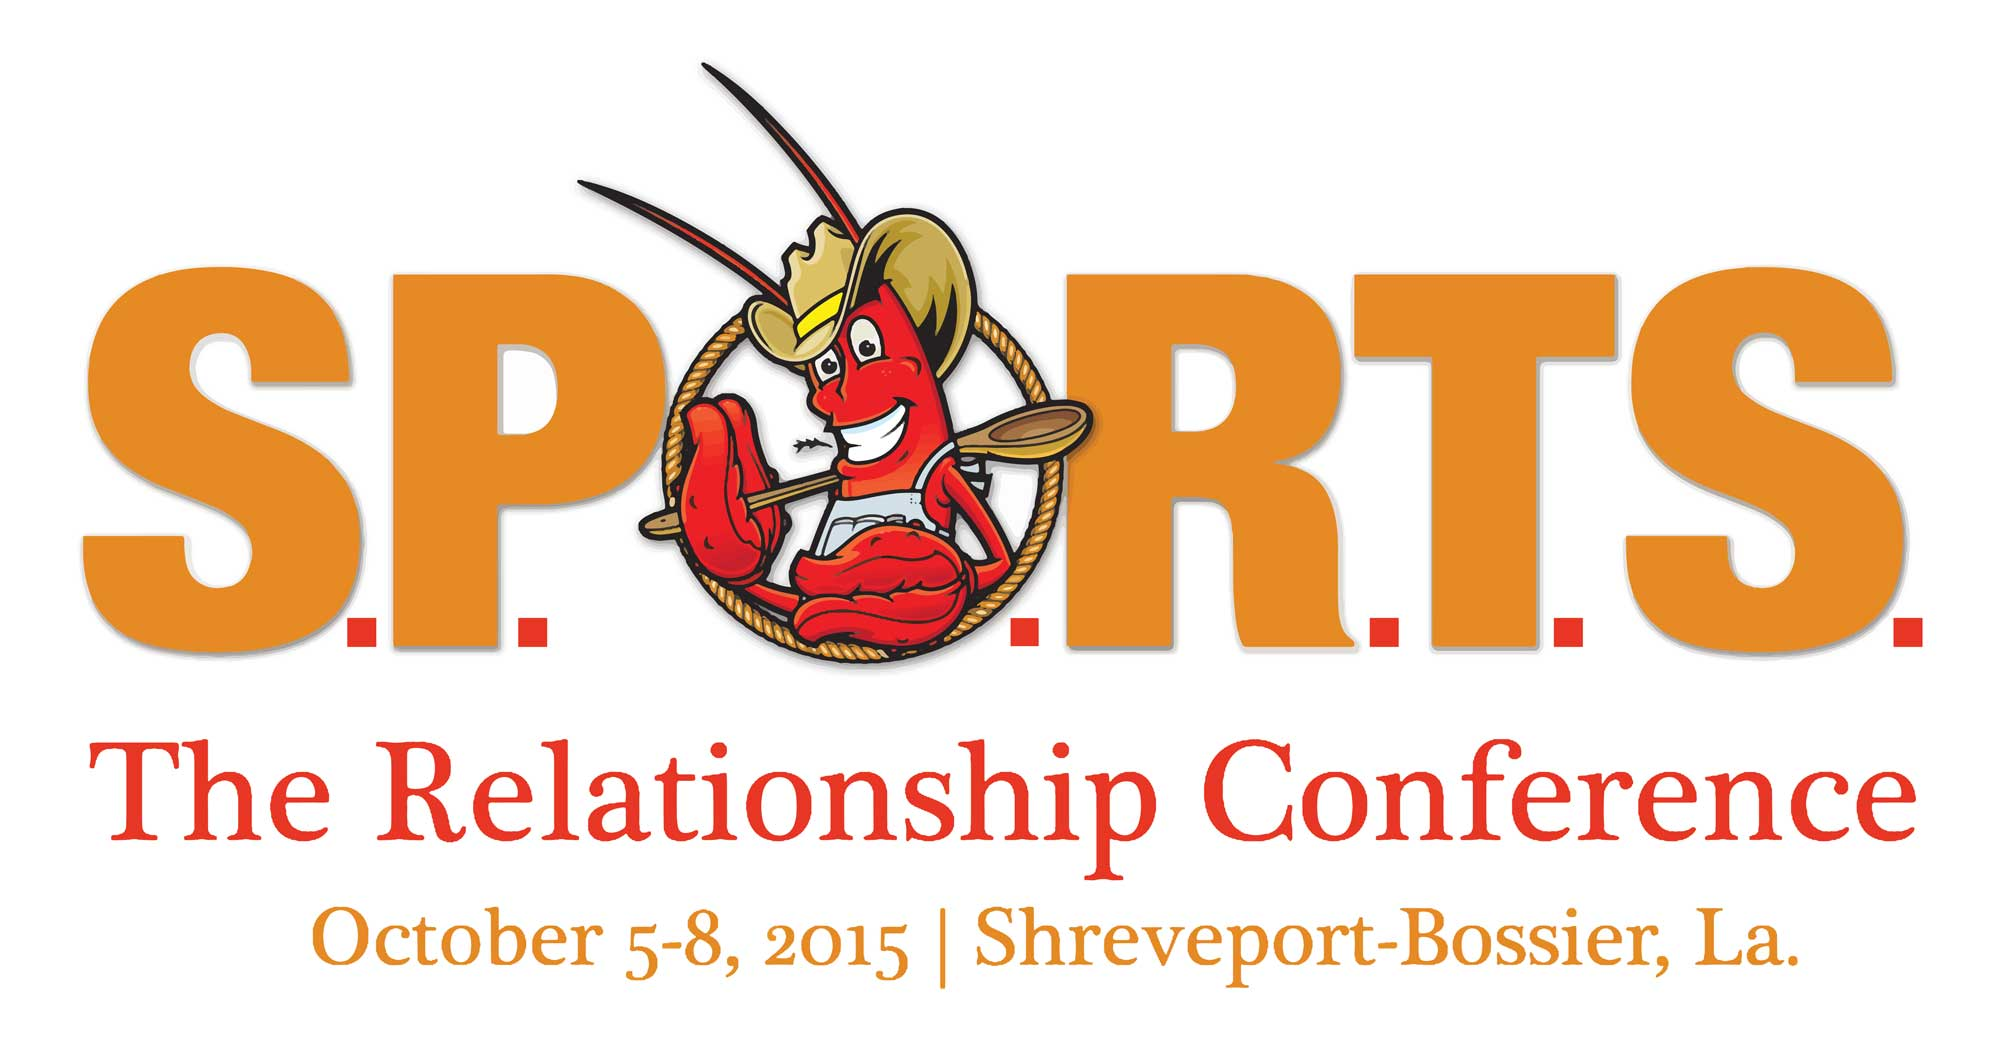 S.P.O.R.T.S. 2015 - The Relationship Conference